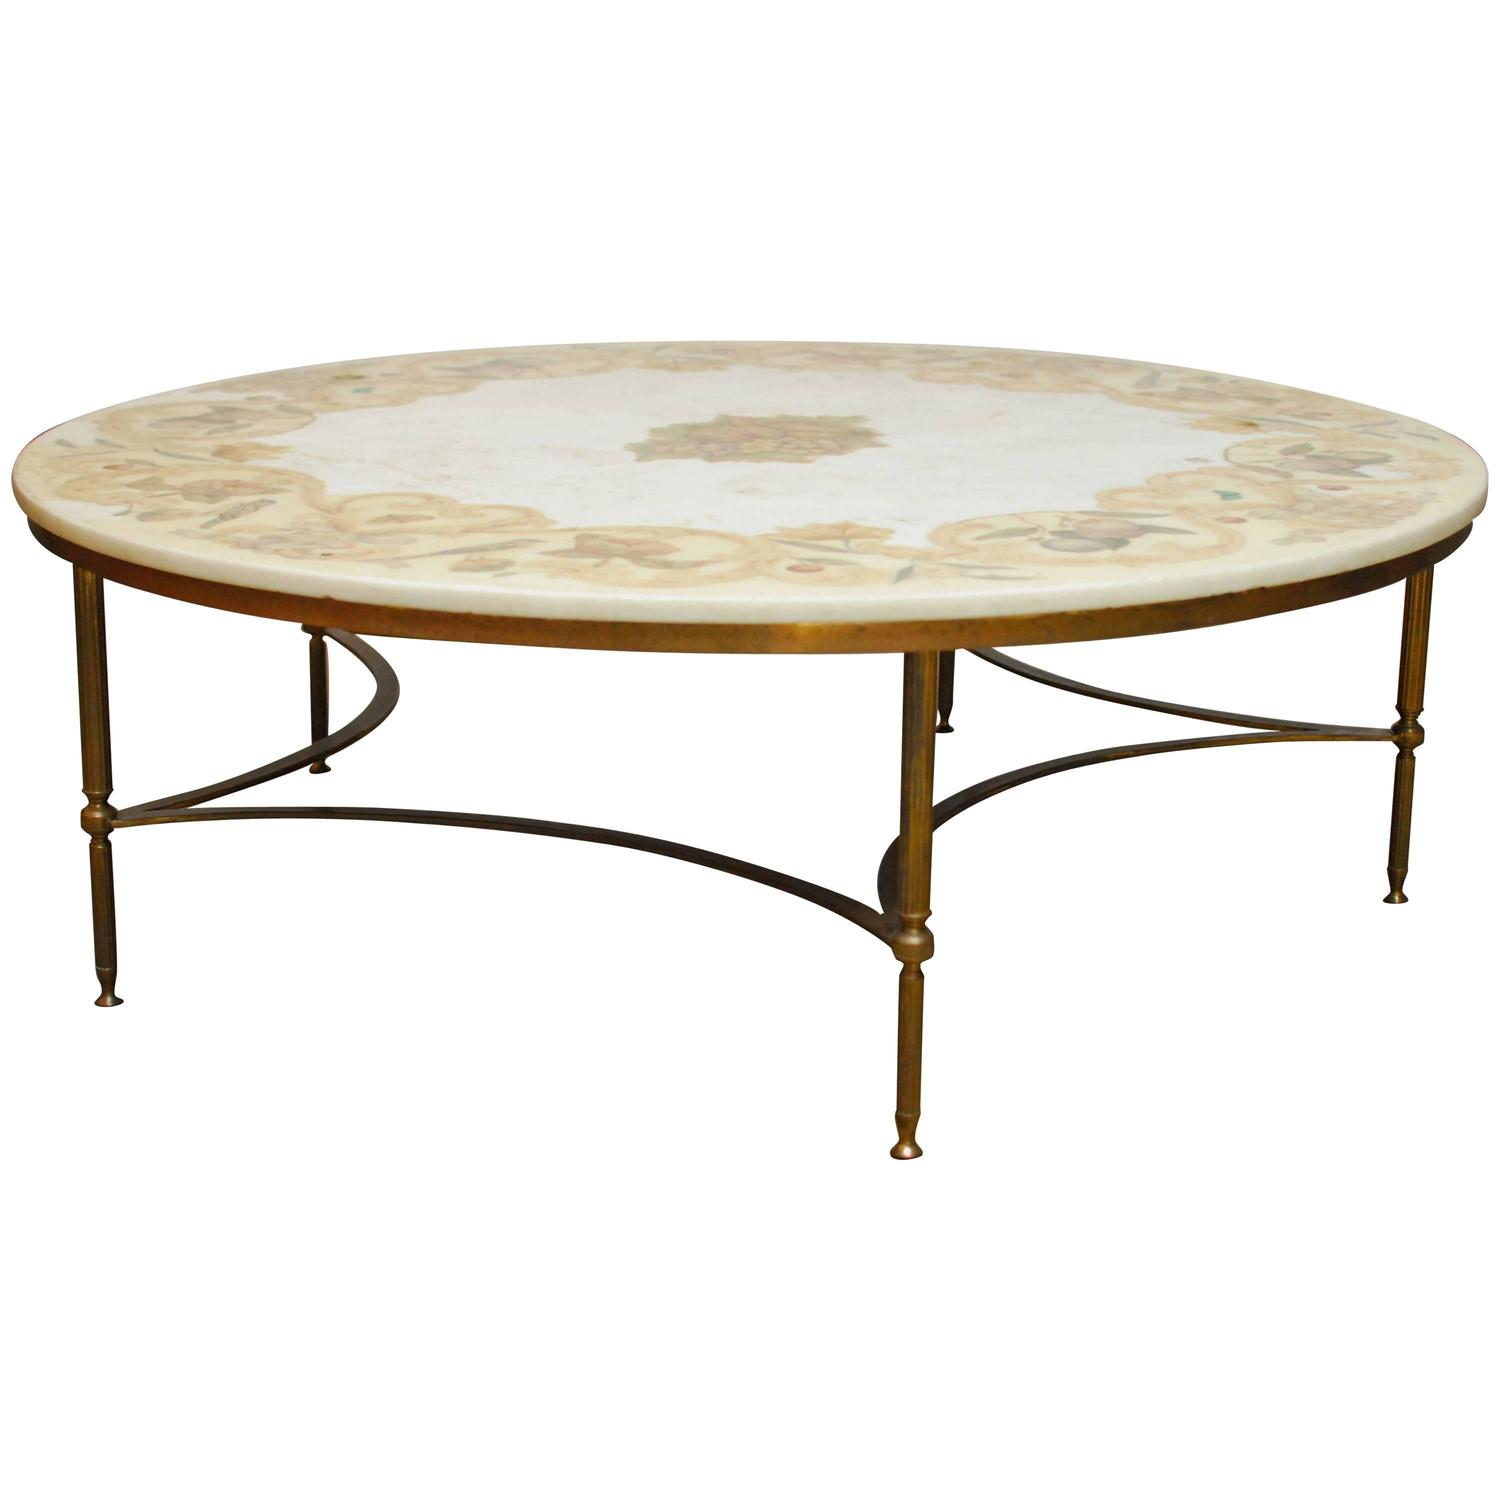 Florentine Marble and Brass Round Cocktail Coffee Table at 1stdibs